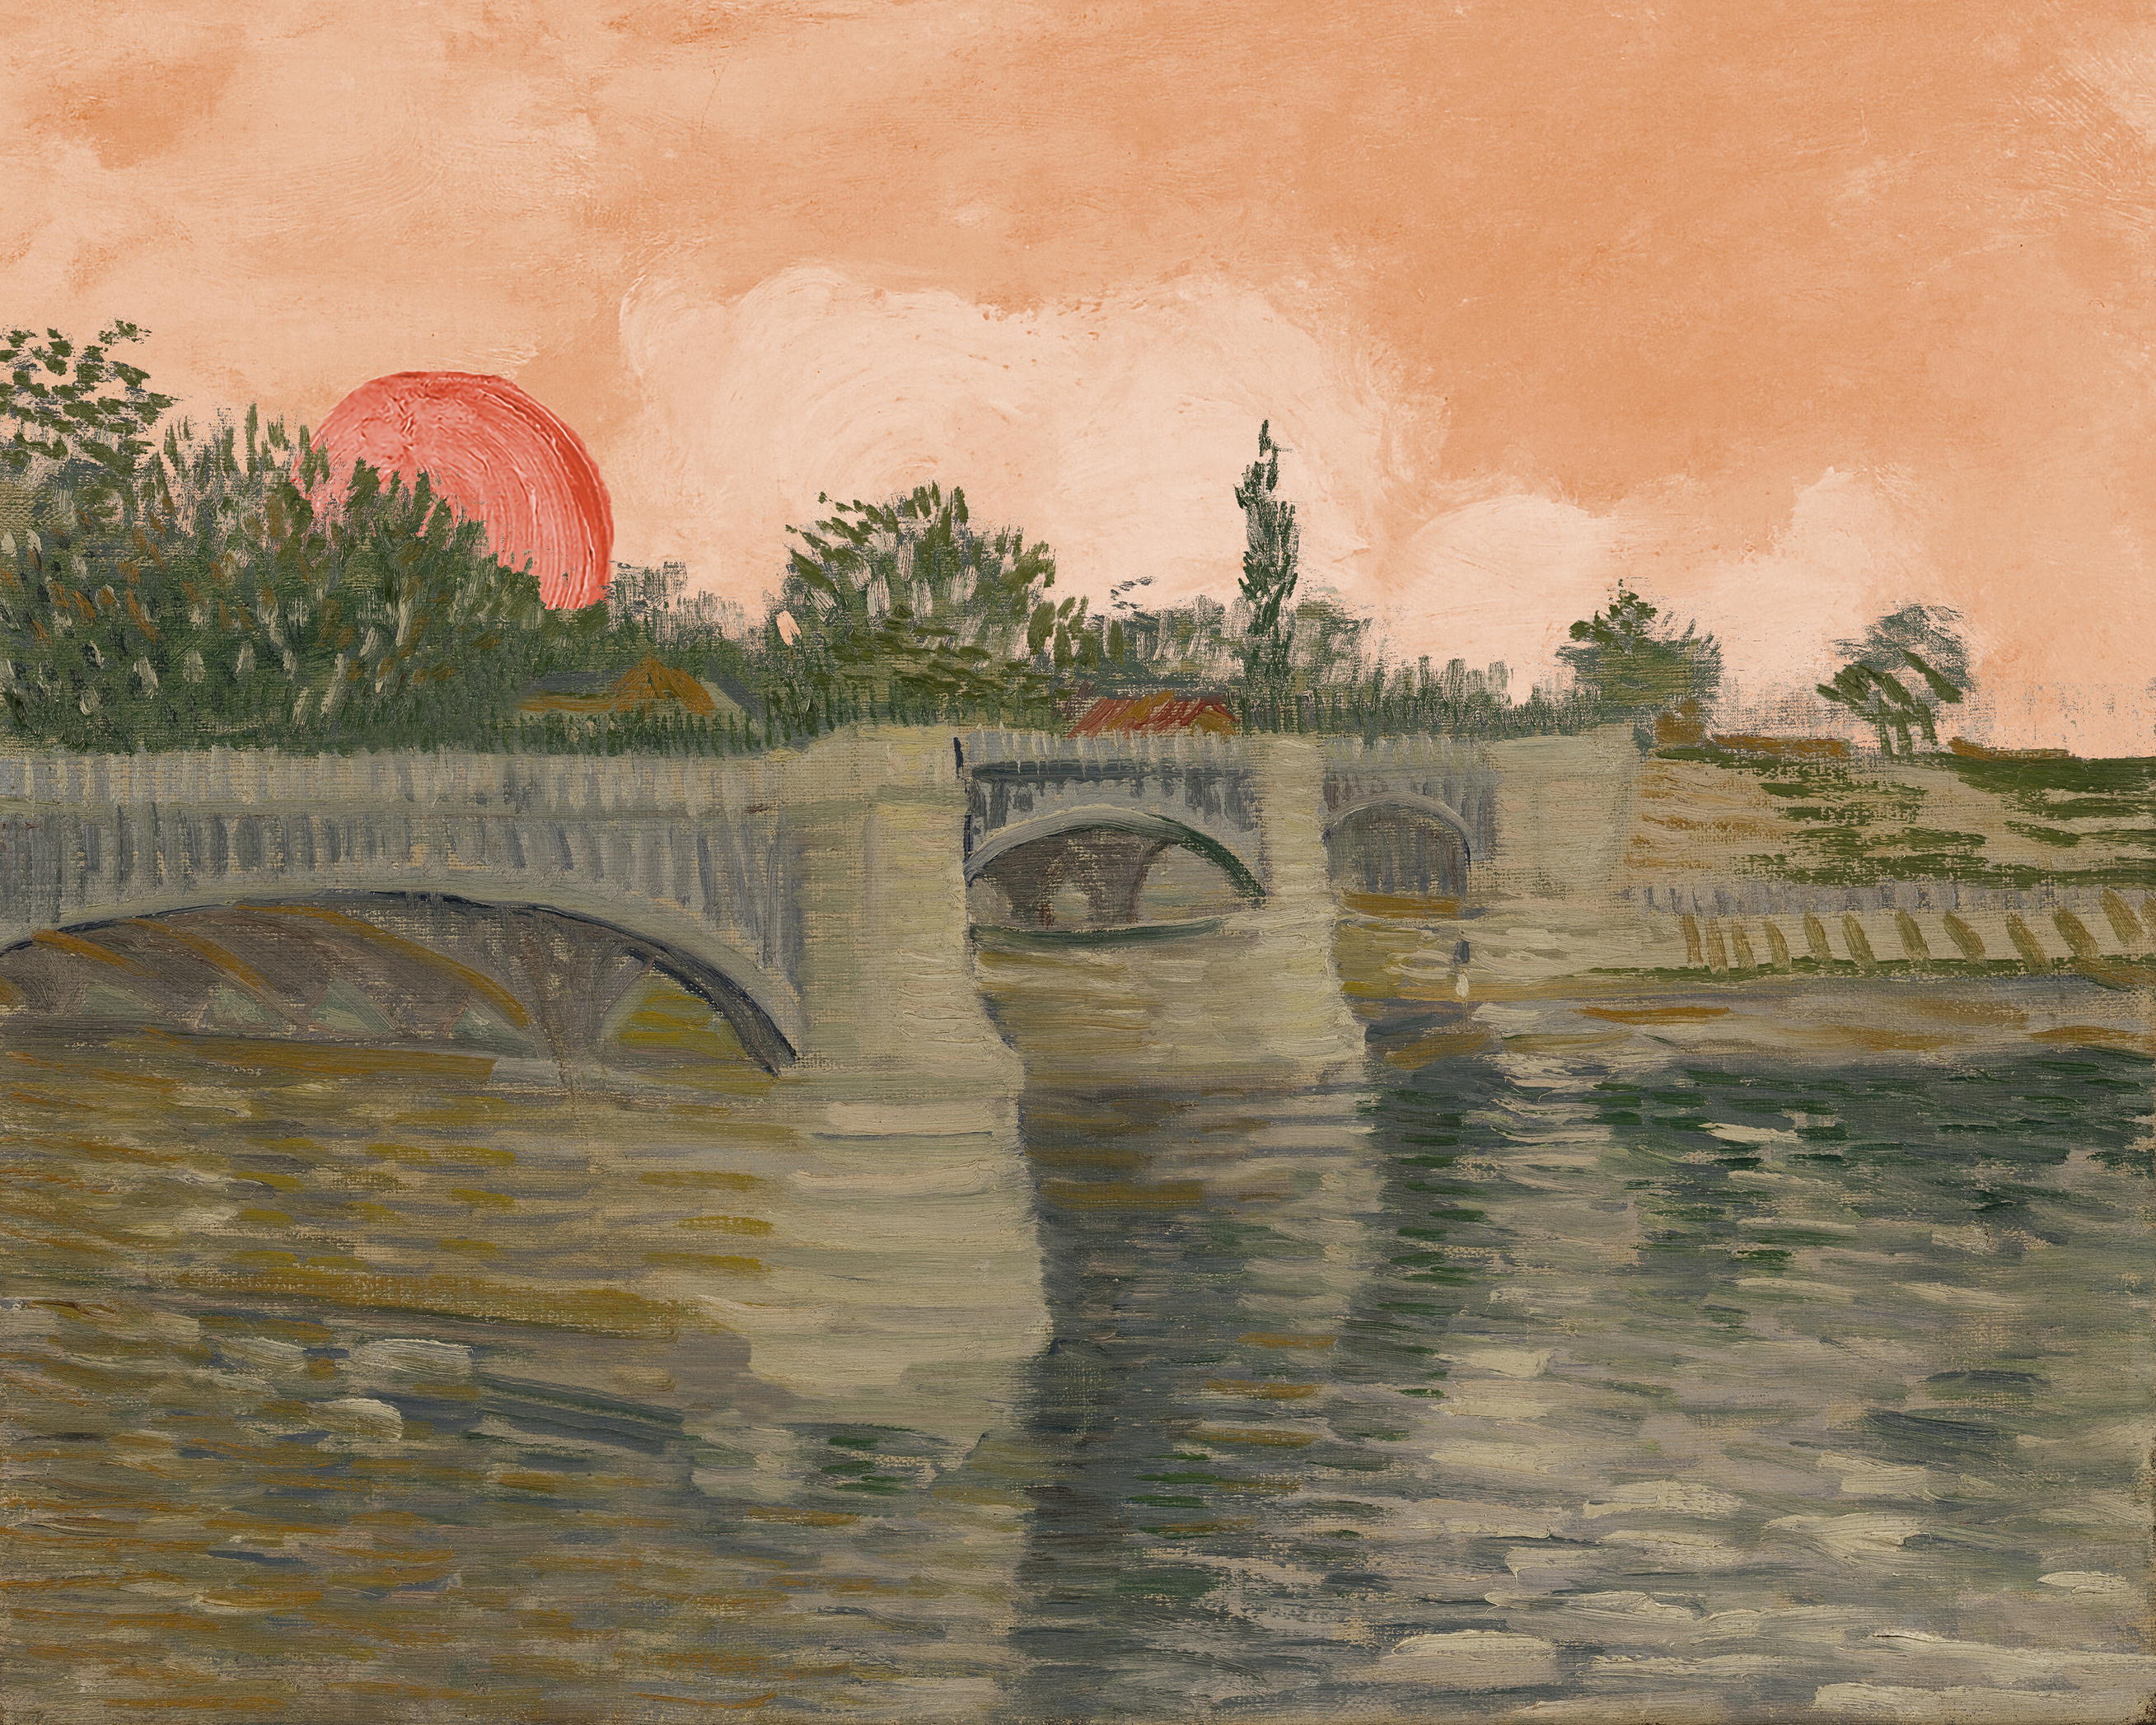 a bridge over water under a red sky with a red sun at dawn